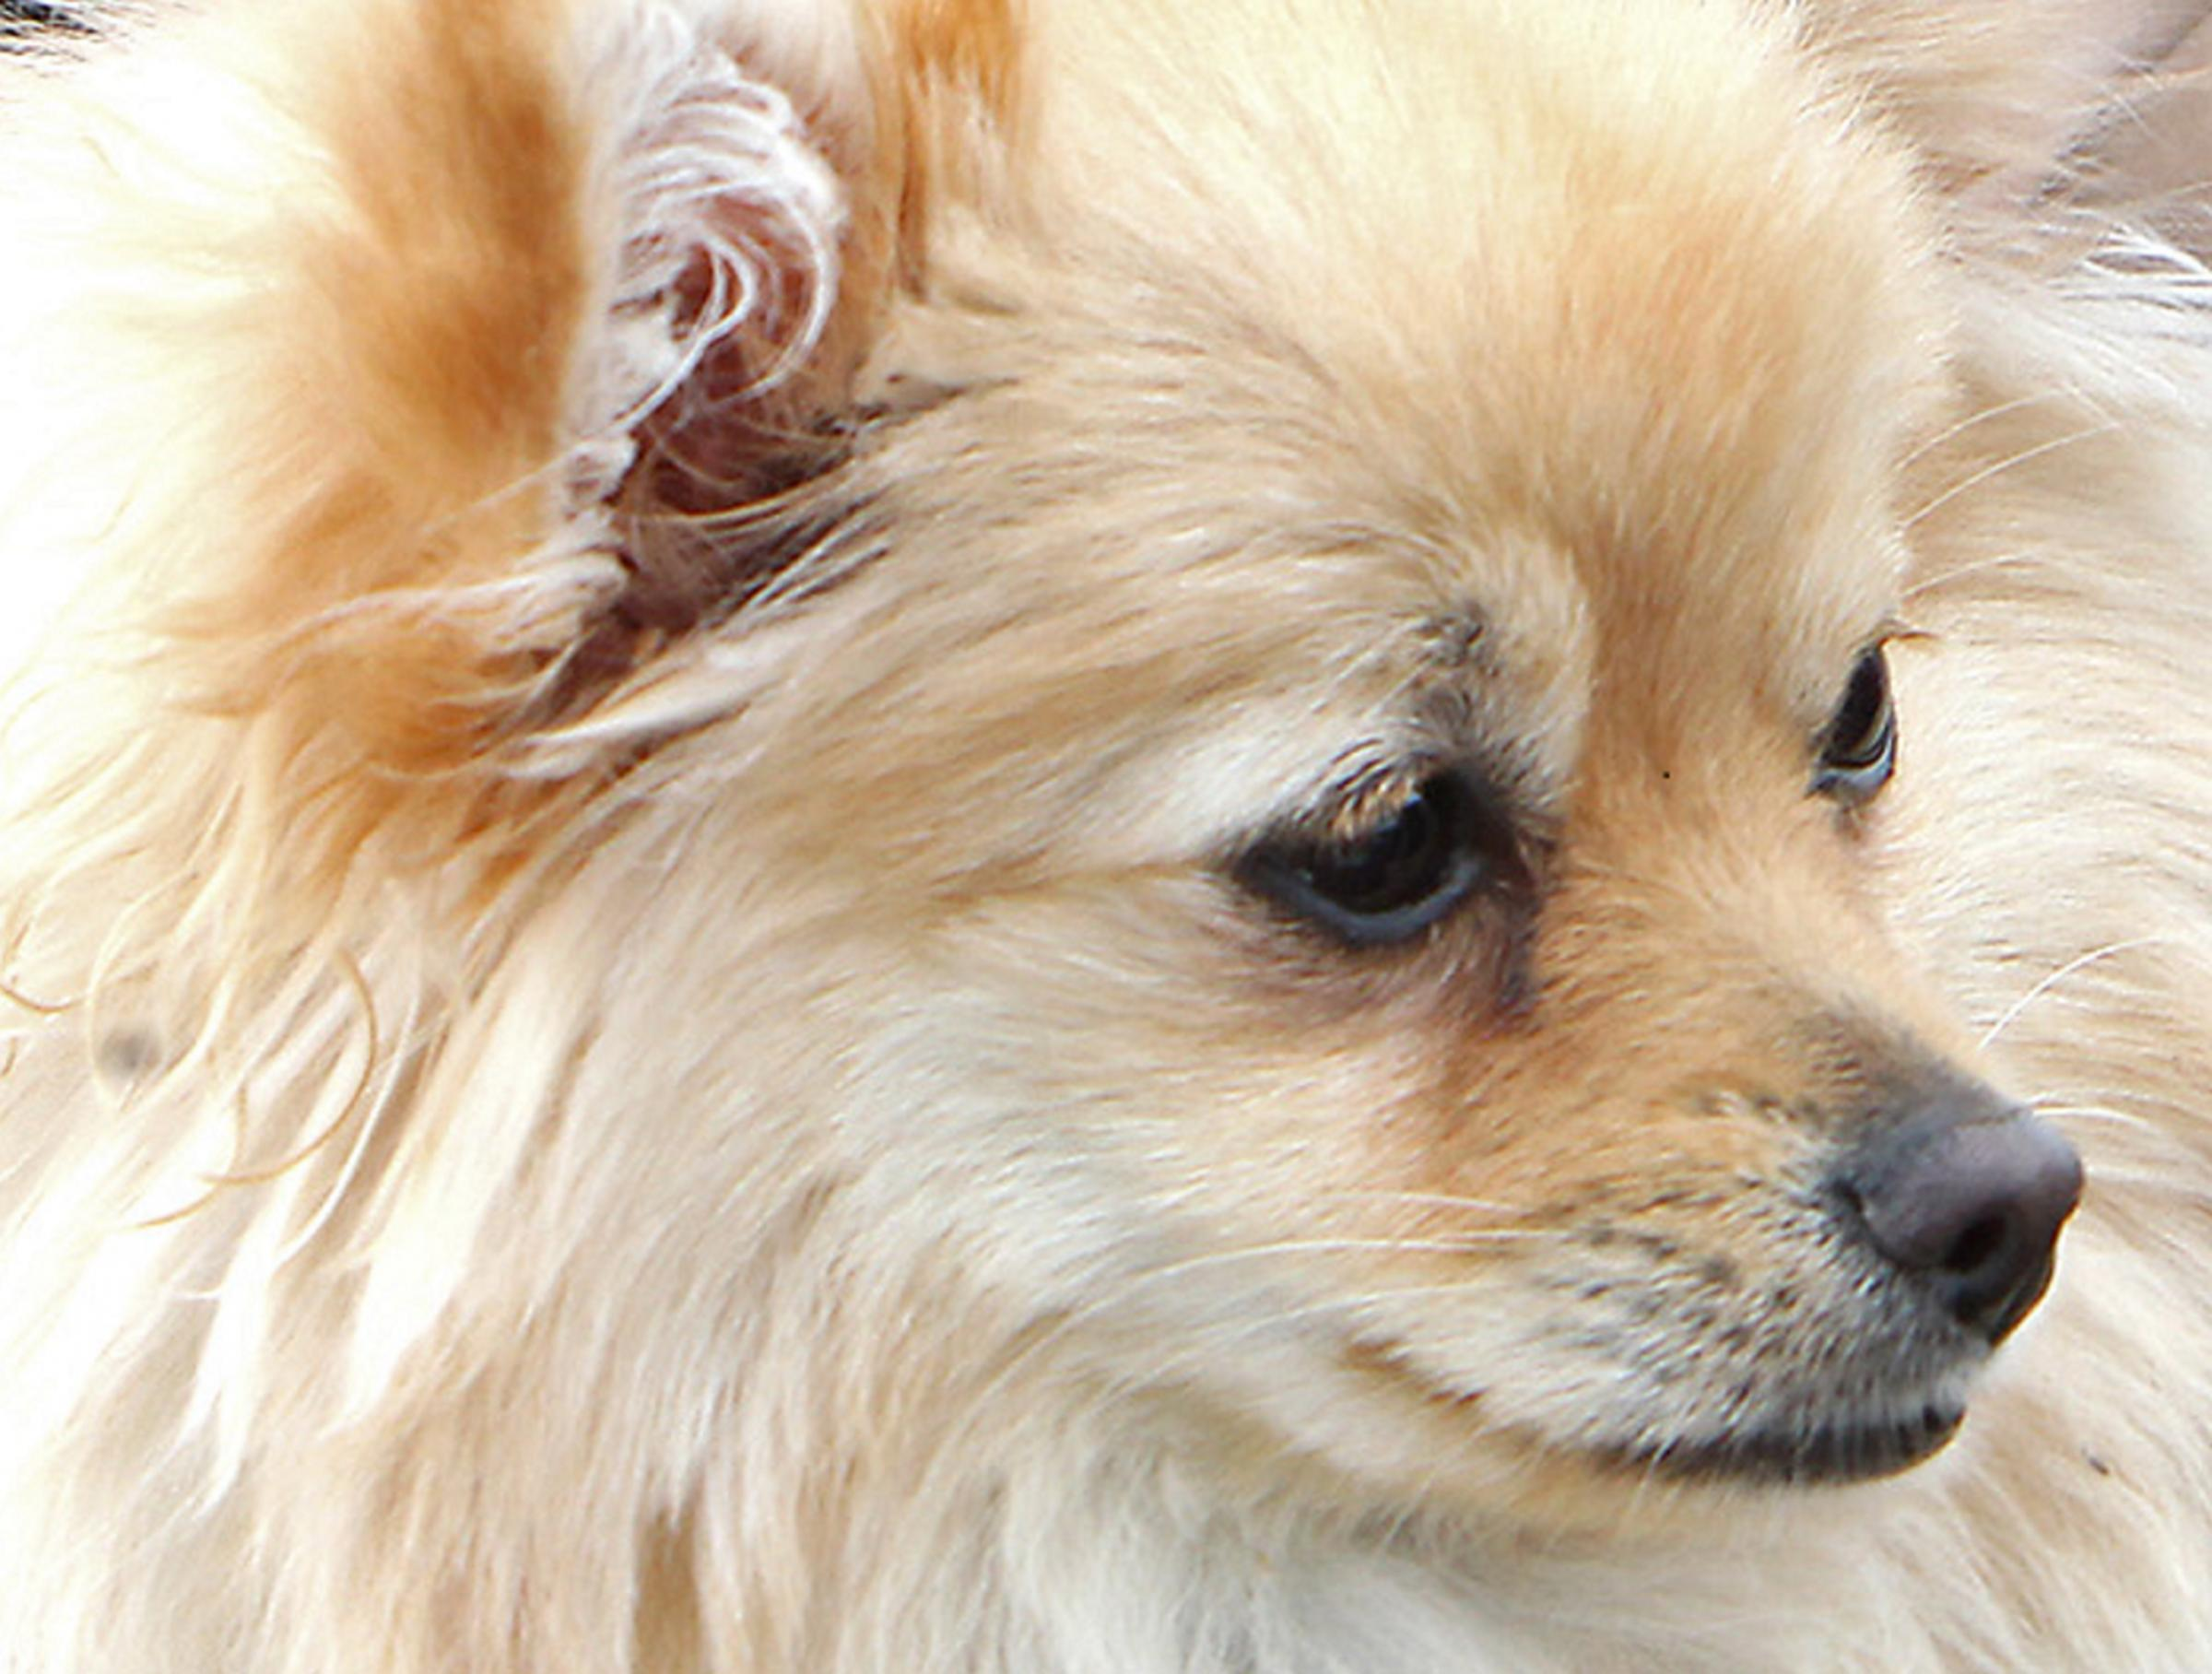 A pomchi similar to the one attacked